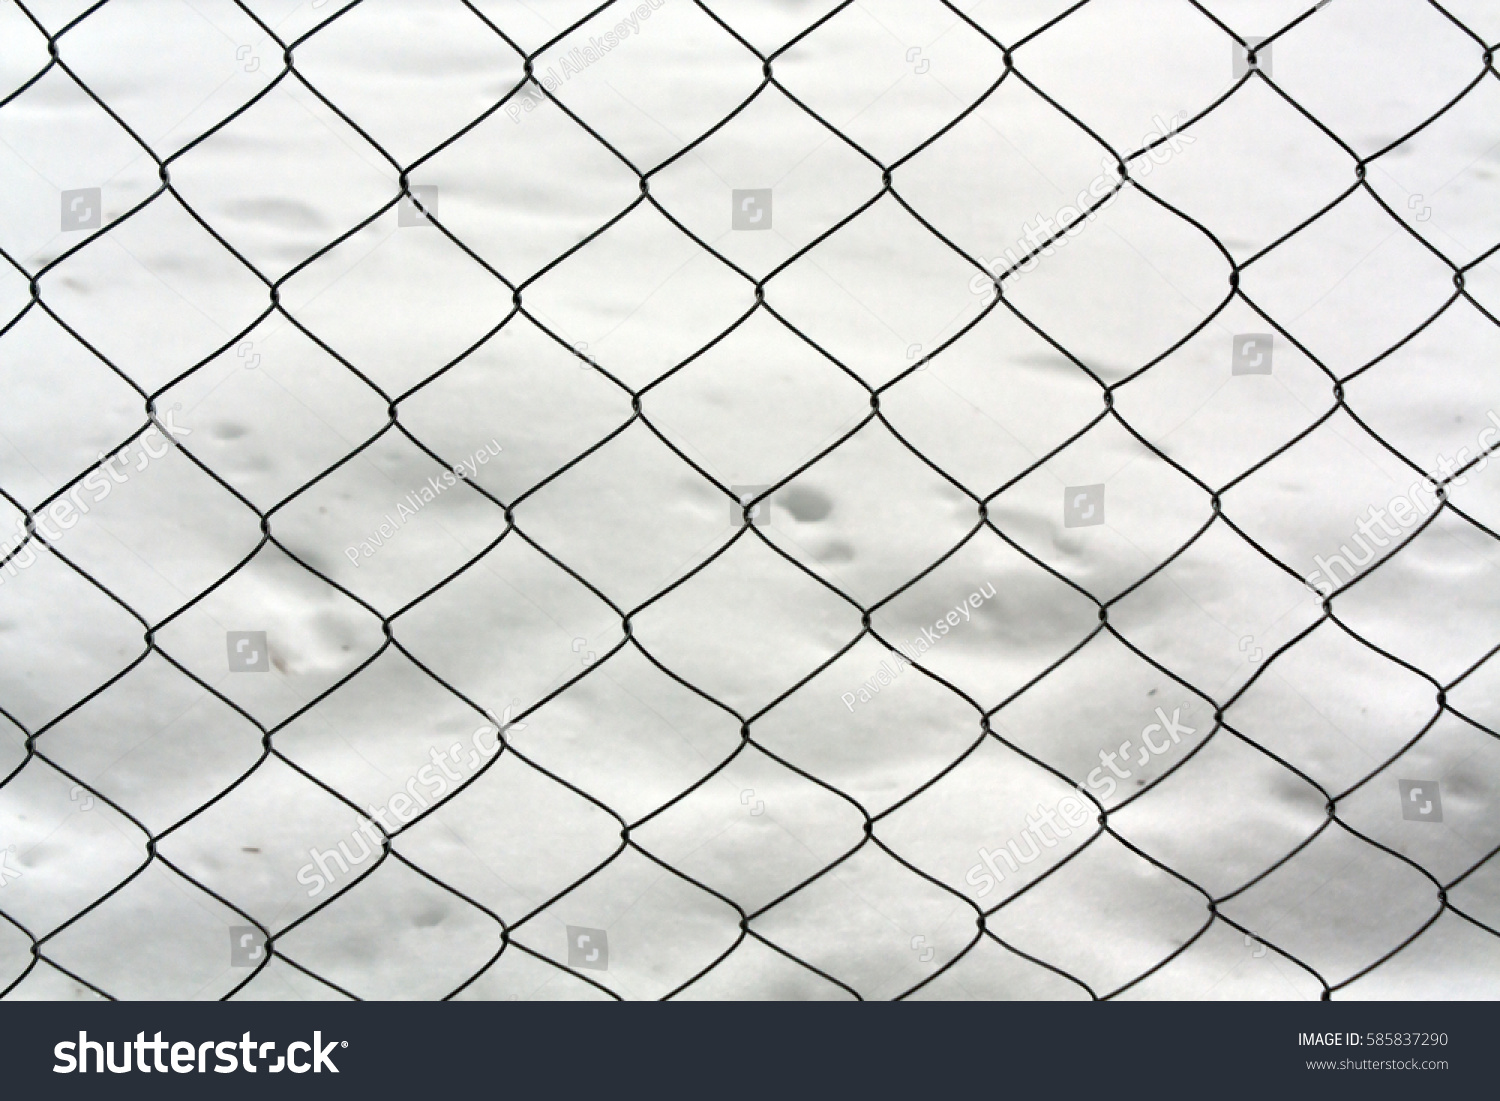 Steel mesh wire fence isolated on white background | EZ Canvas